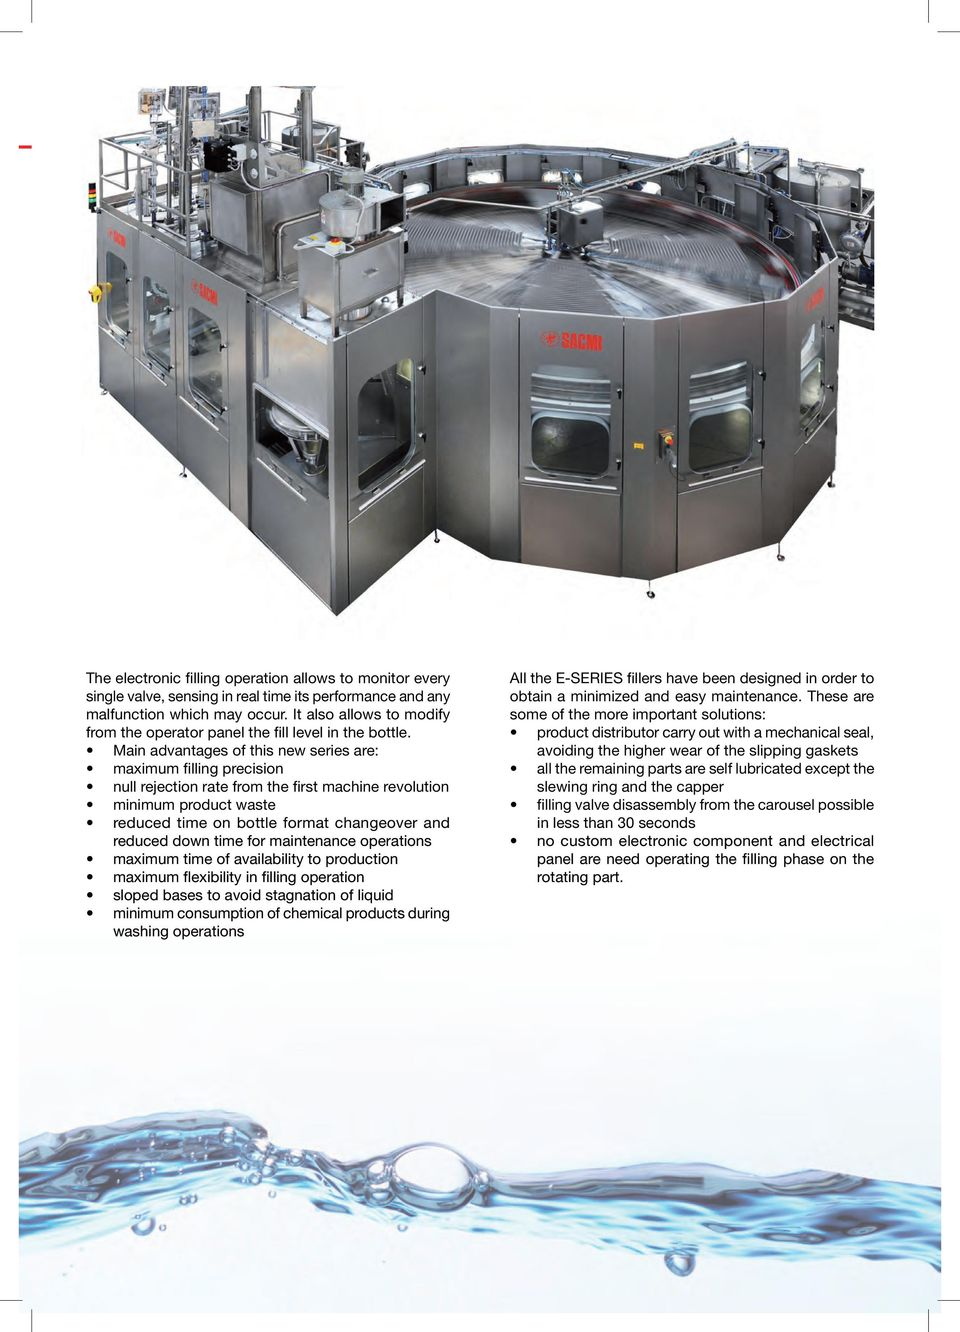 Main advantages of this new series are: maximum filling precision null rejection rate from the first machine revolution minimum product waste reduced time on bottle format changeover and reduced down